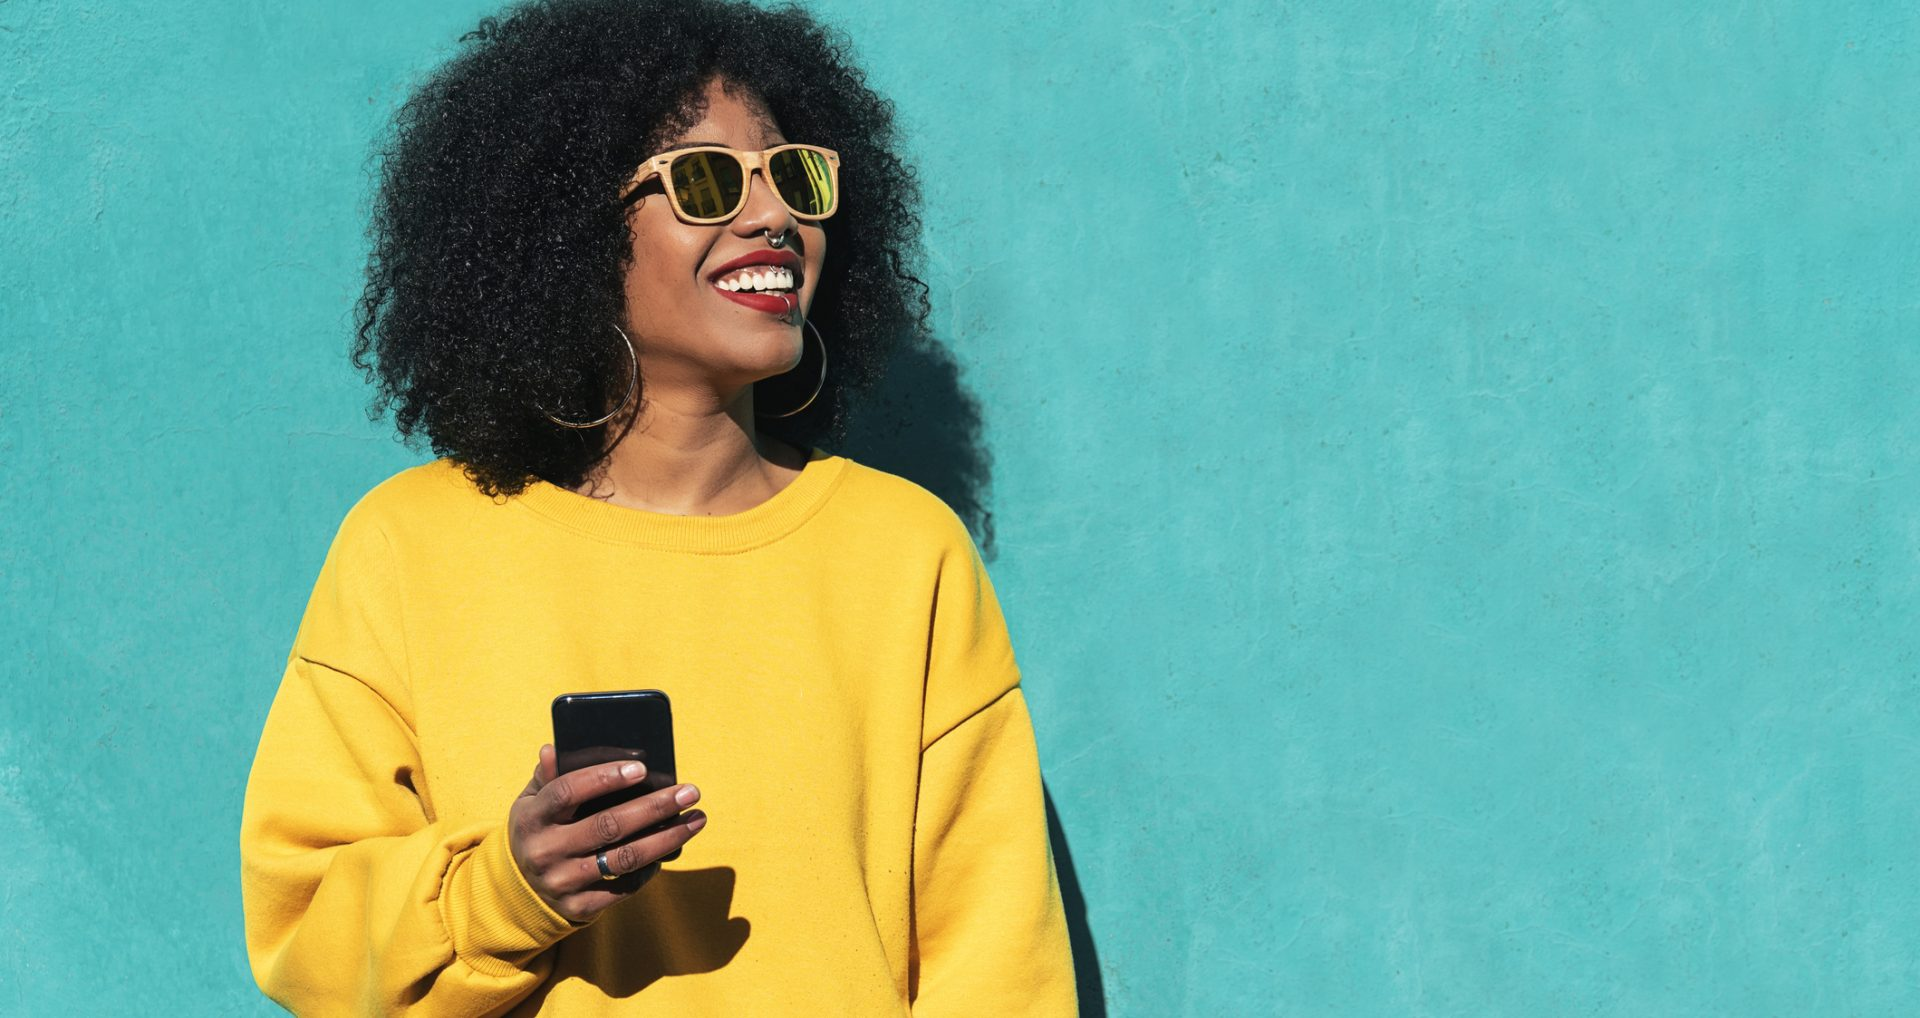 Digital Women Influencers Study: The Power of the PANK